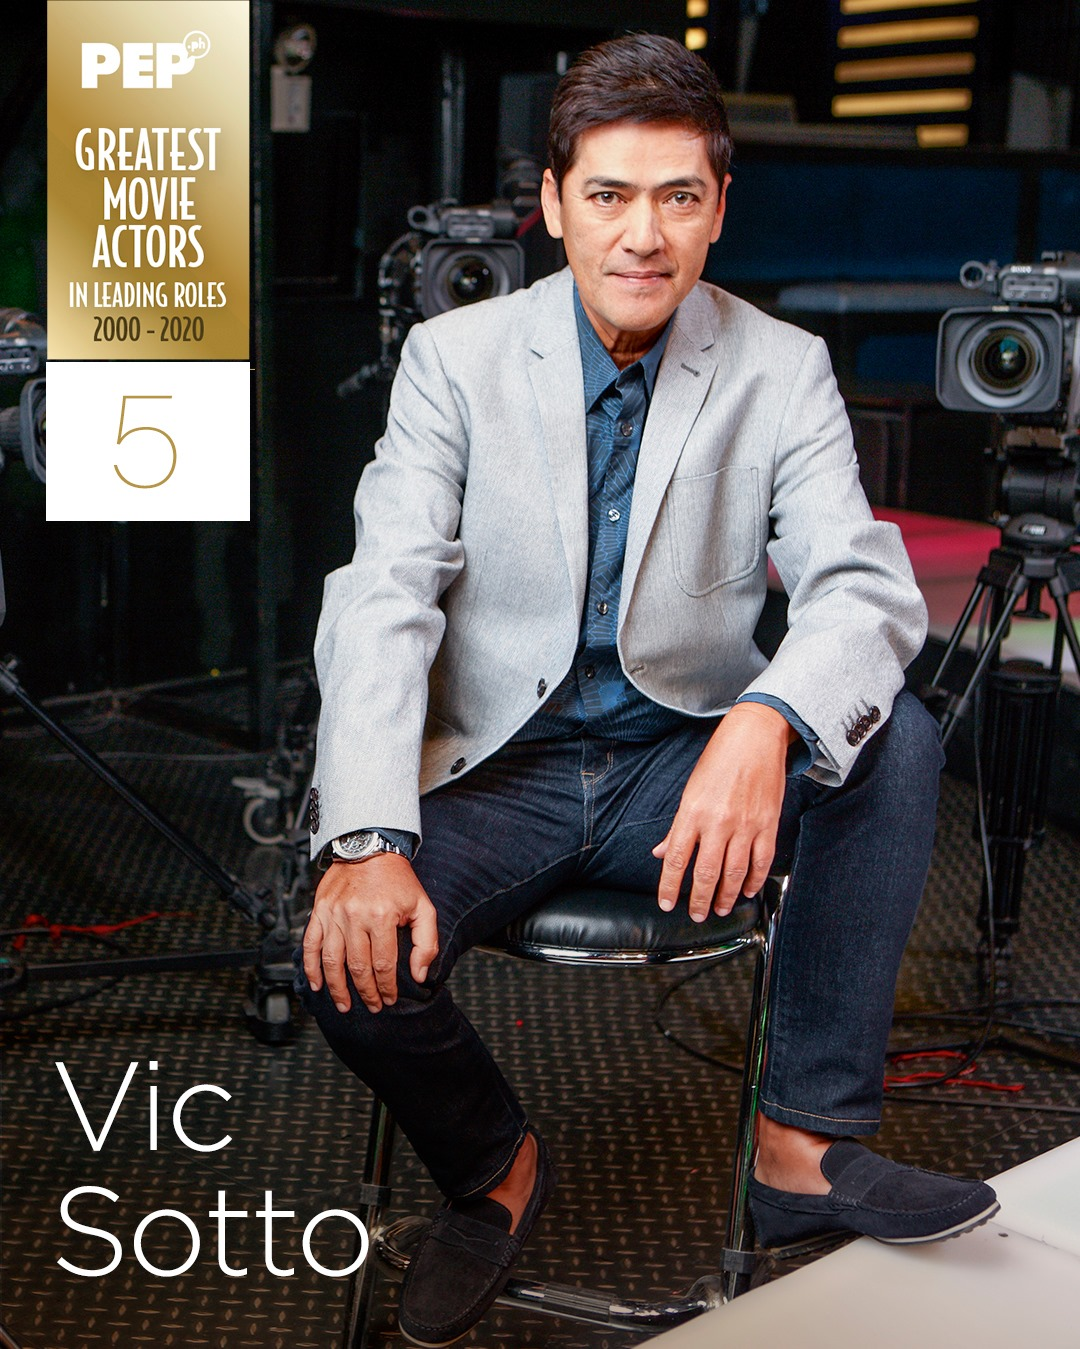 Vic Sotto, 15 Greatest Movie Actors in Leading Roles